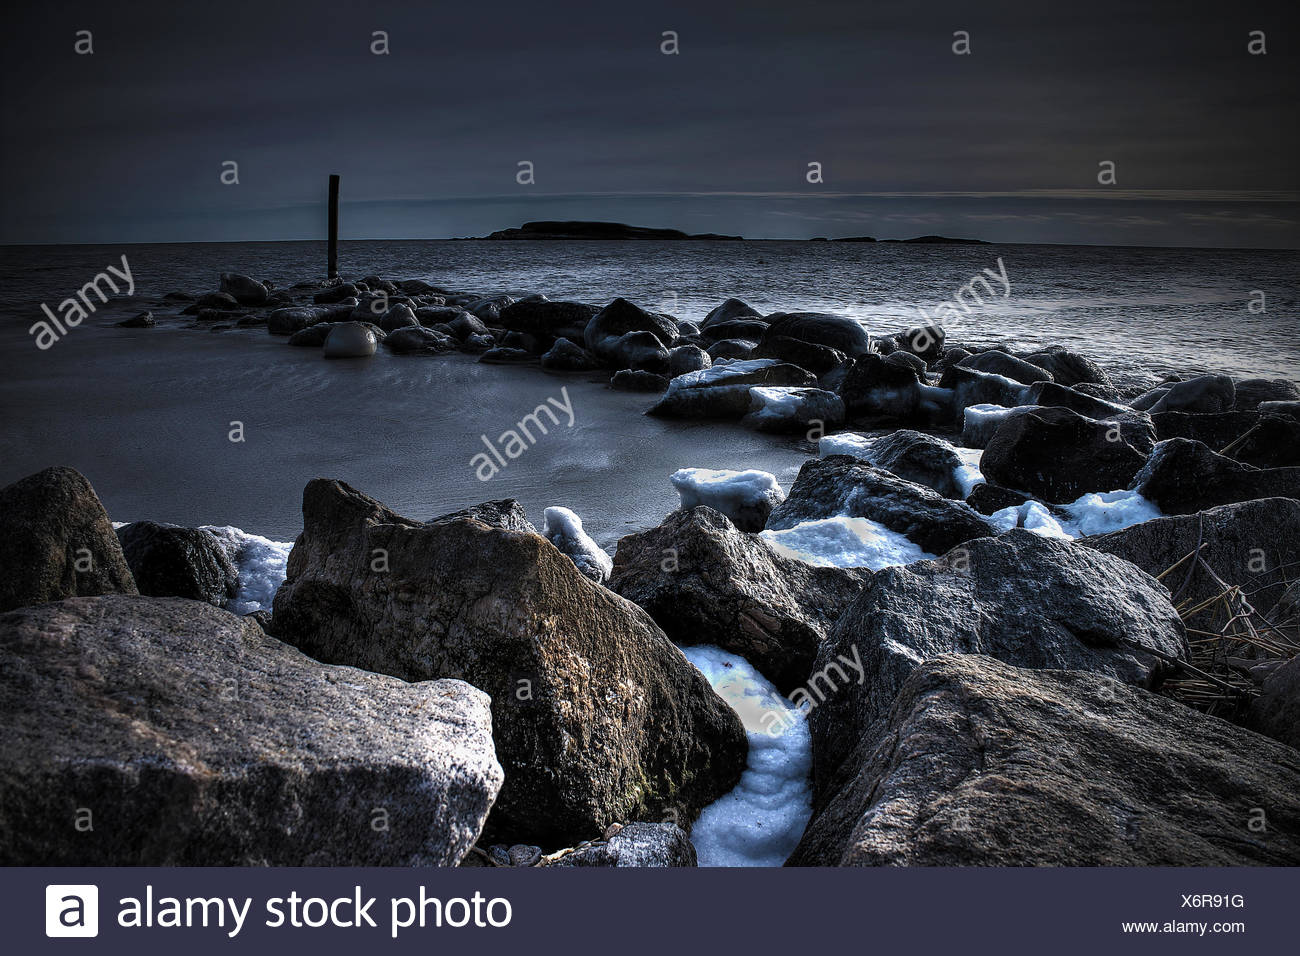 Rocky breakwaters at beach - Stock Image